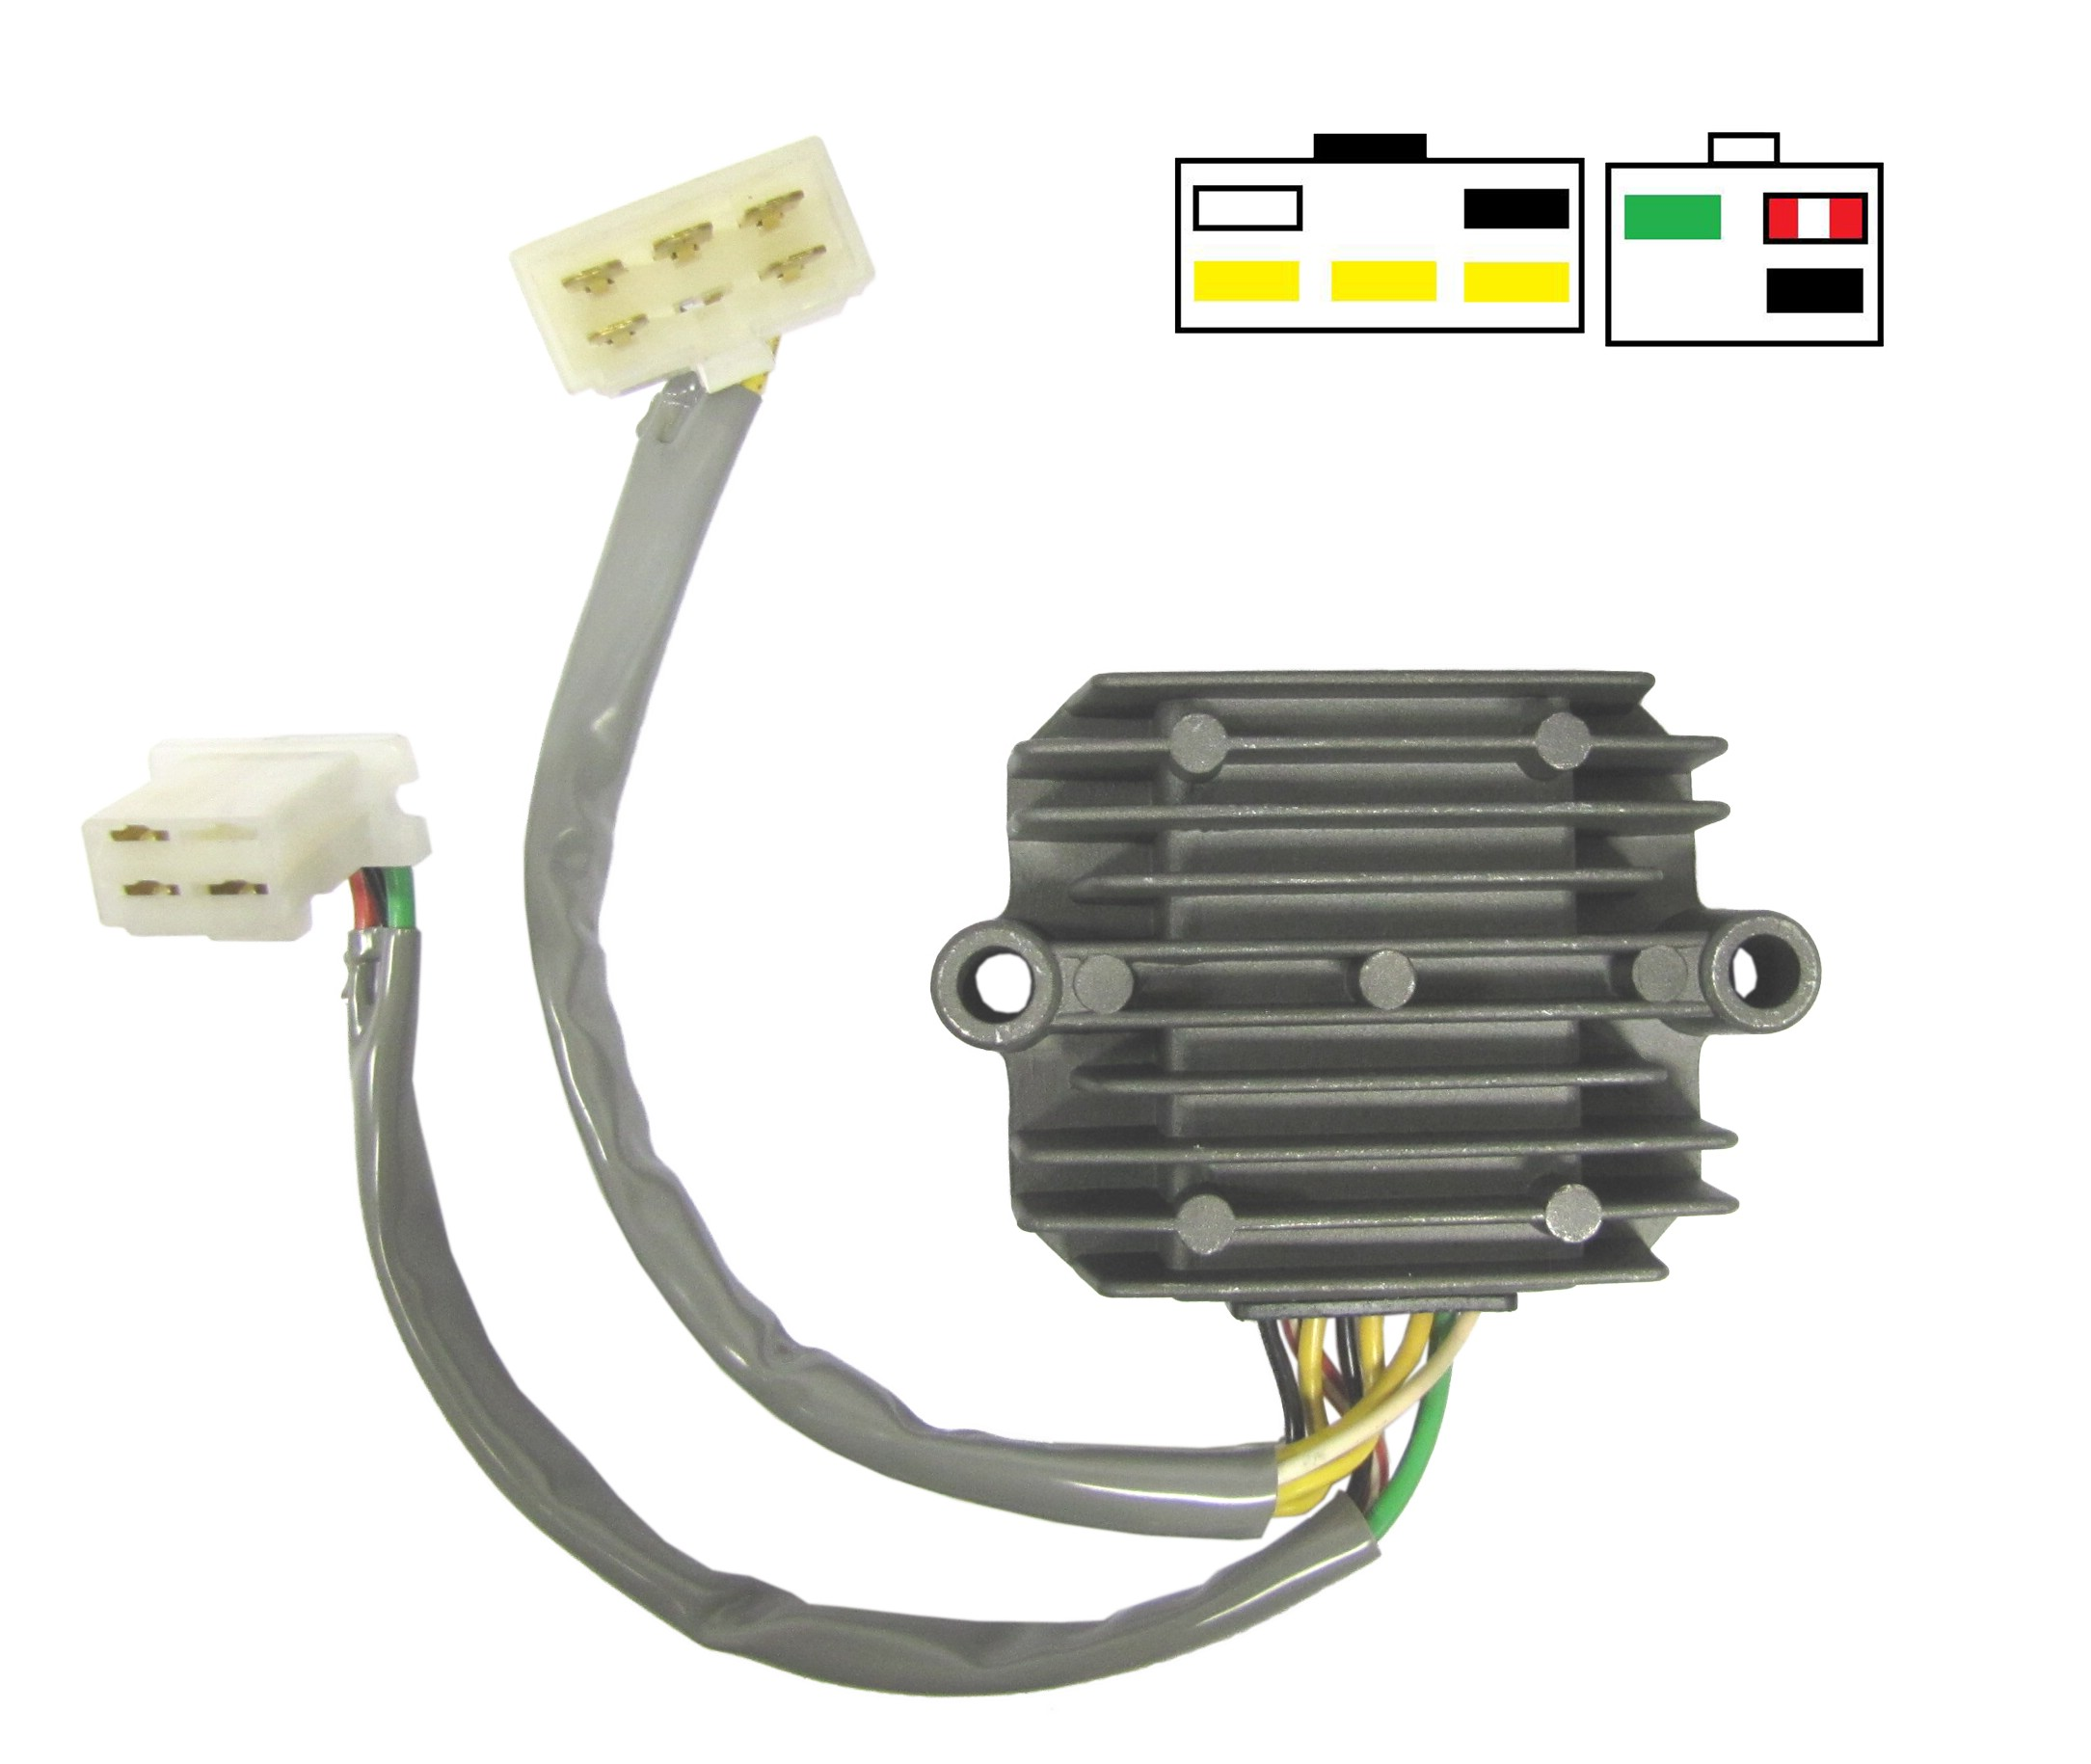 Honda Regulator Rectifier Wiring Trusted Diagrams Diagram Fits Cb1000 8 Wires Sh236b 12 Each Ebay Simple Points